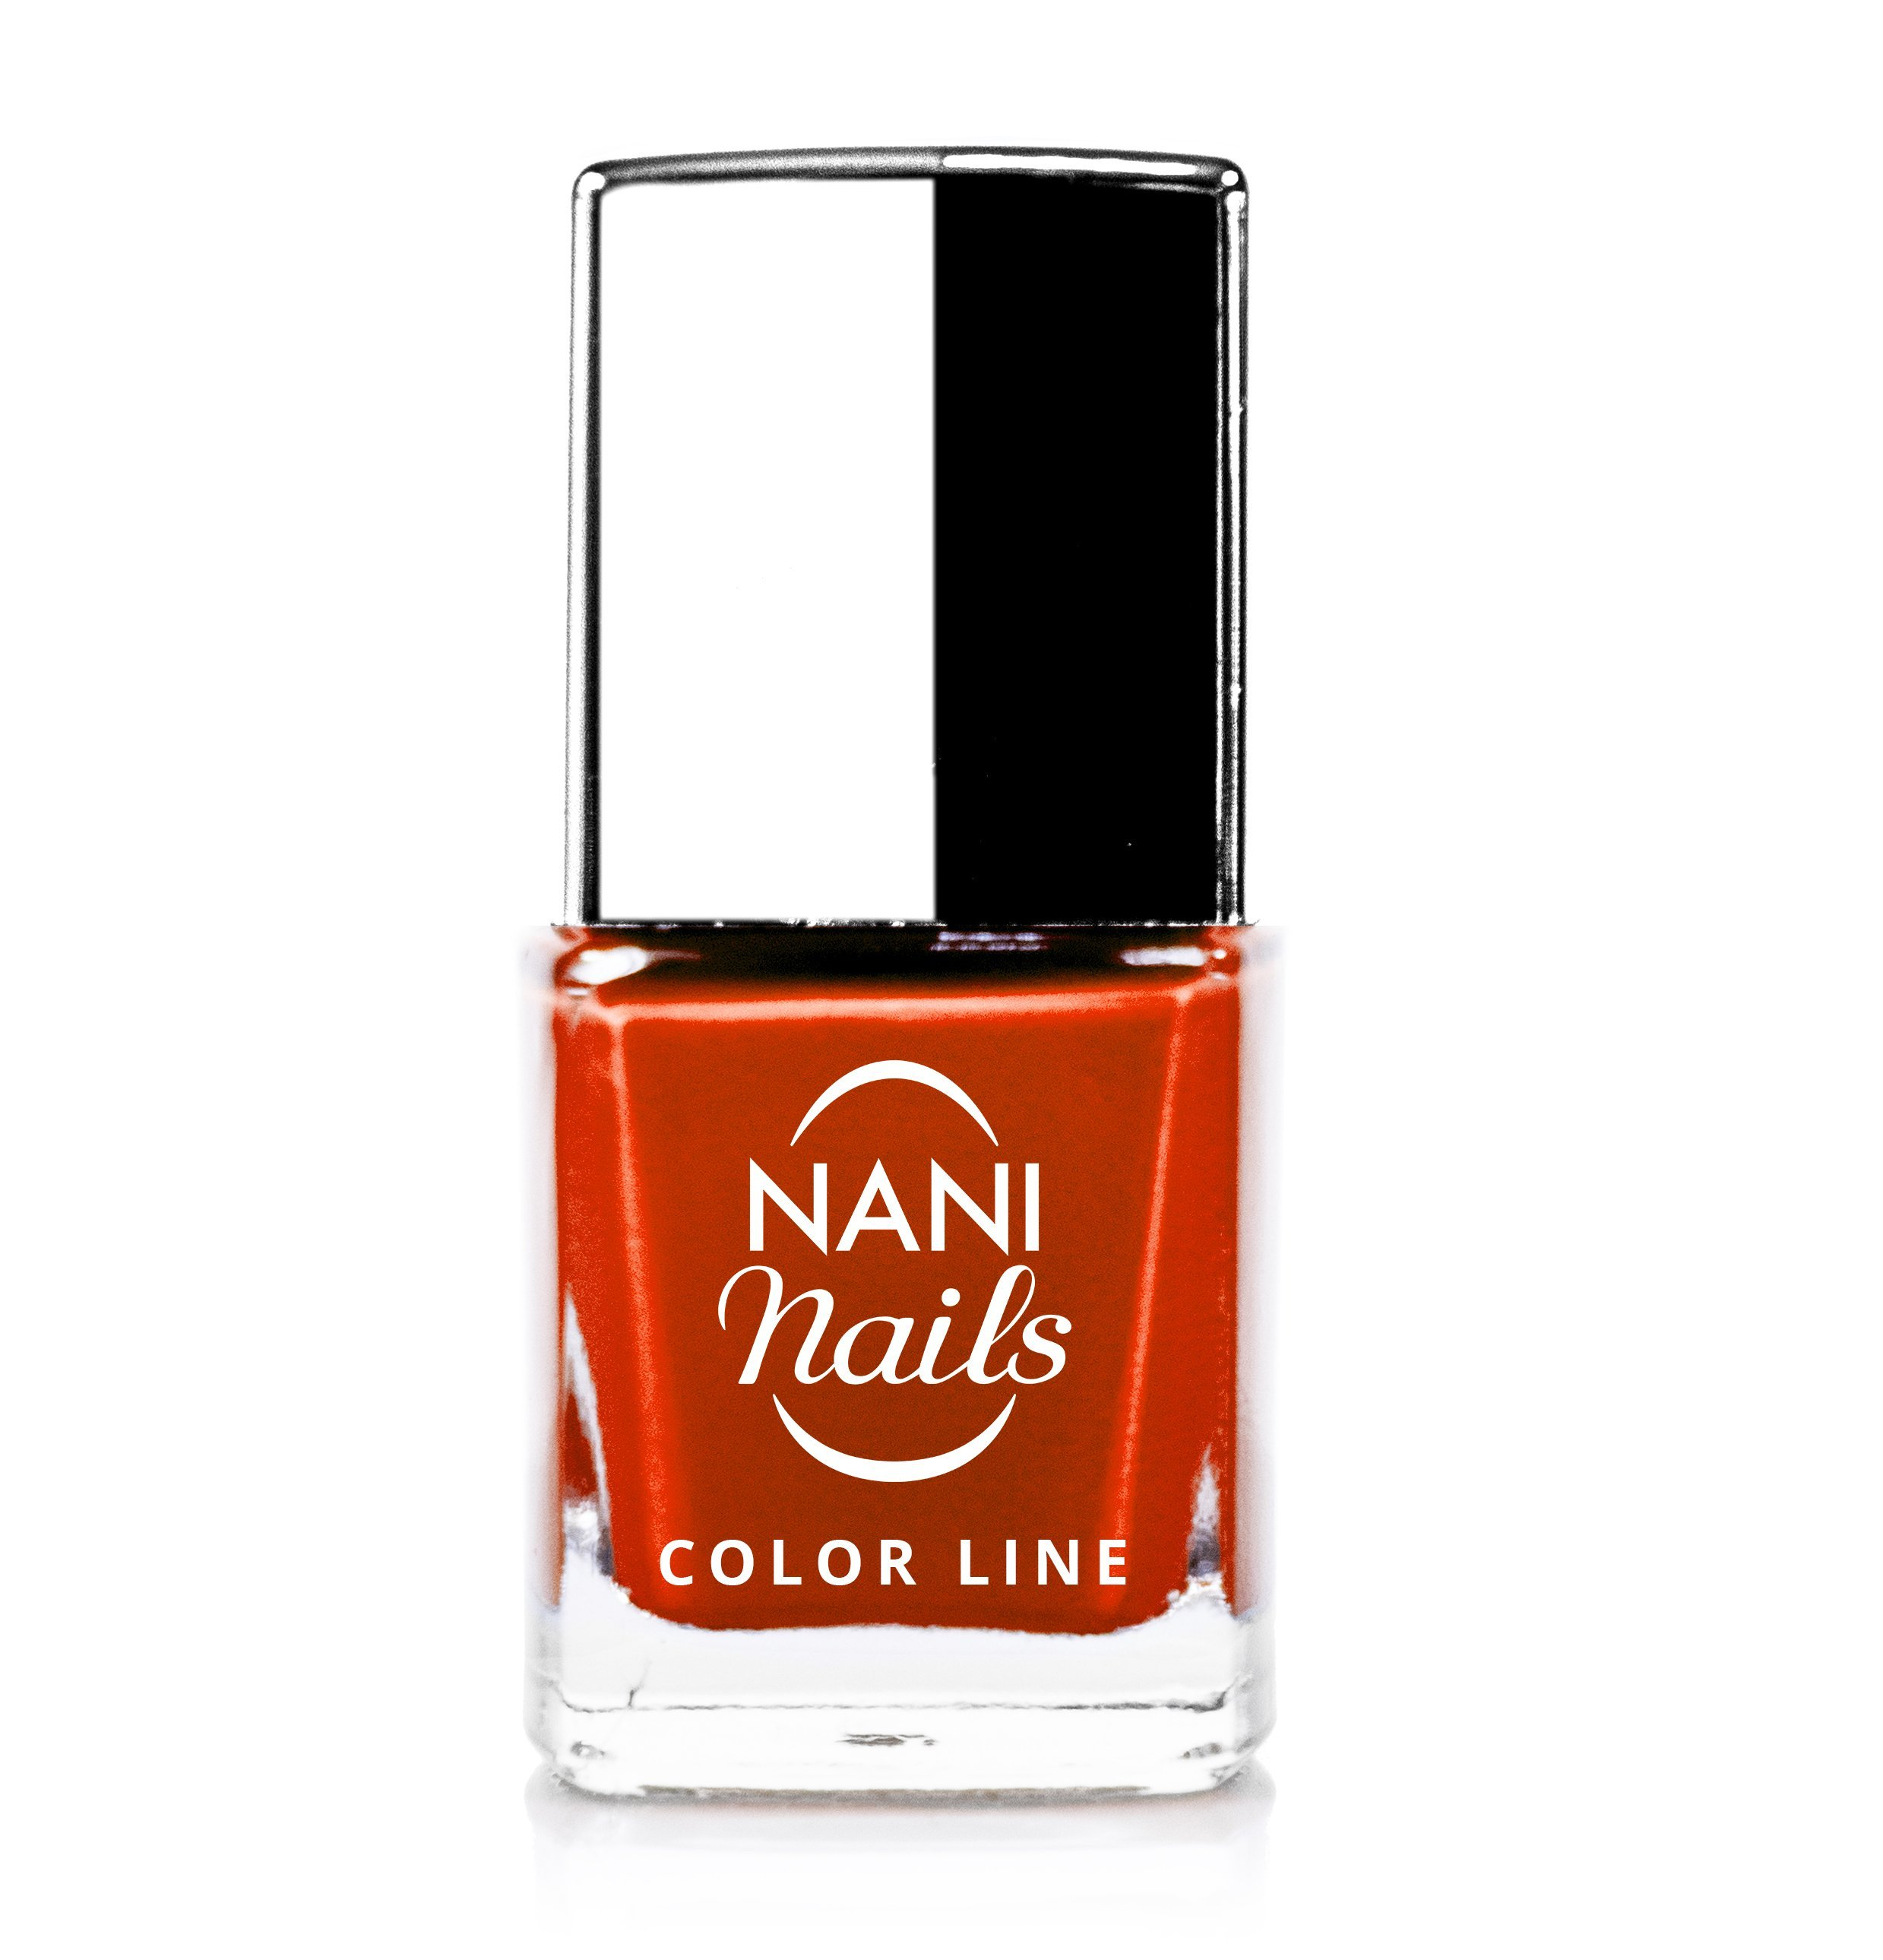 NANI lak Color Line 9 ml - 78